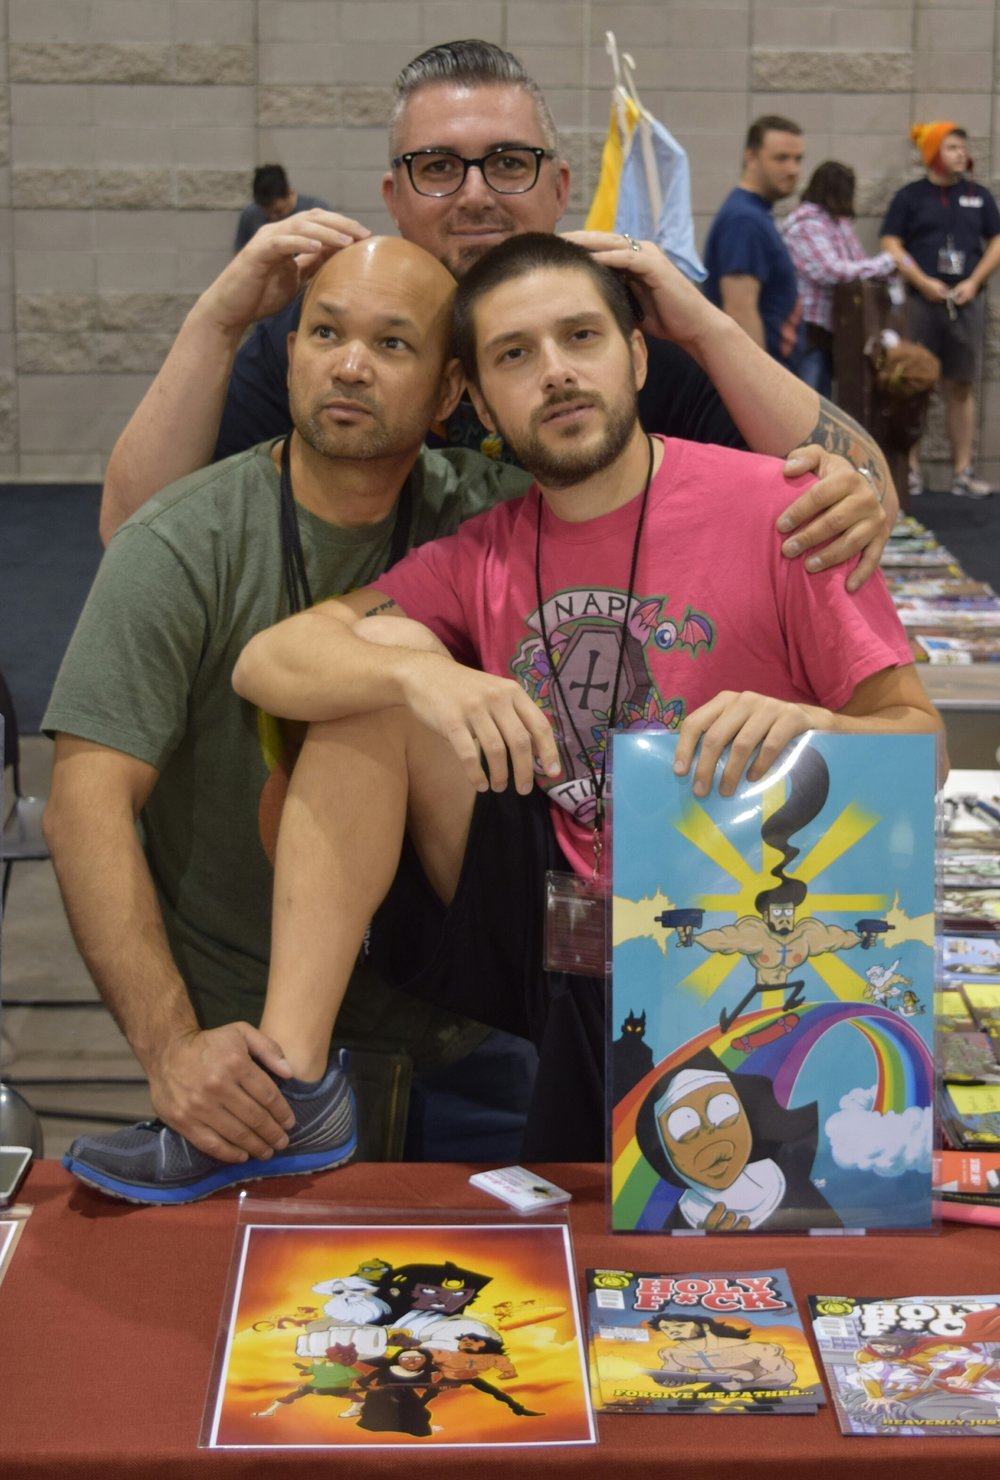 Dave Dwonch (left), Nick Marino (right), and Dan Mendoza (back) at Phoenix Comic Con 2016 (3).